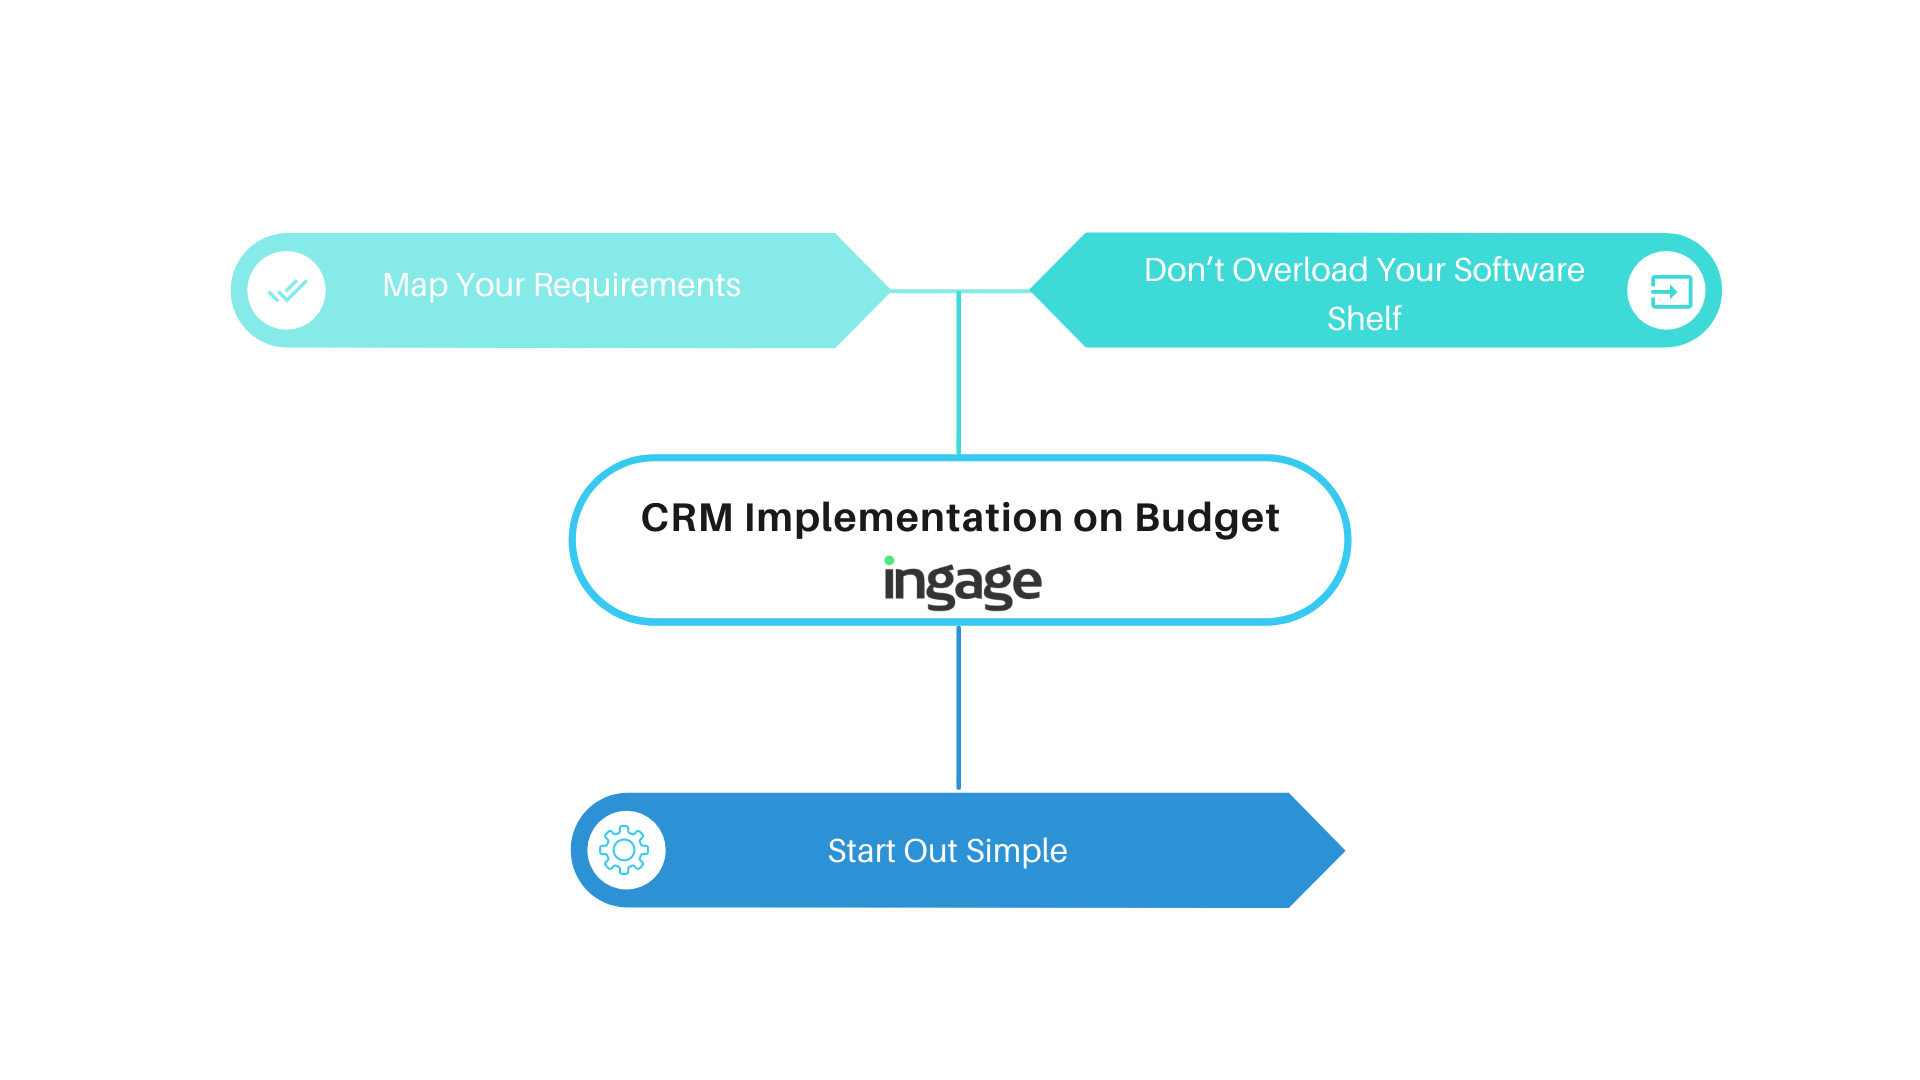 Implement CRM on Budget